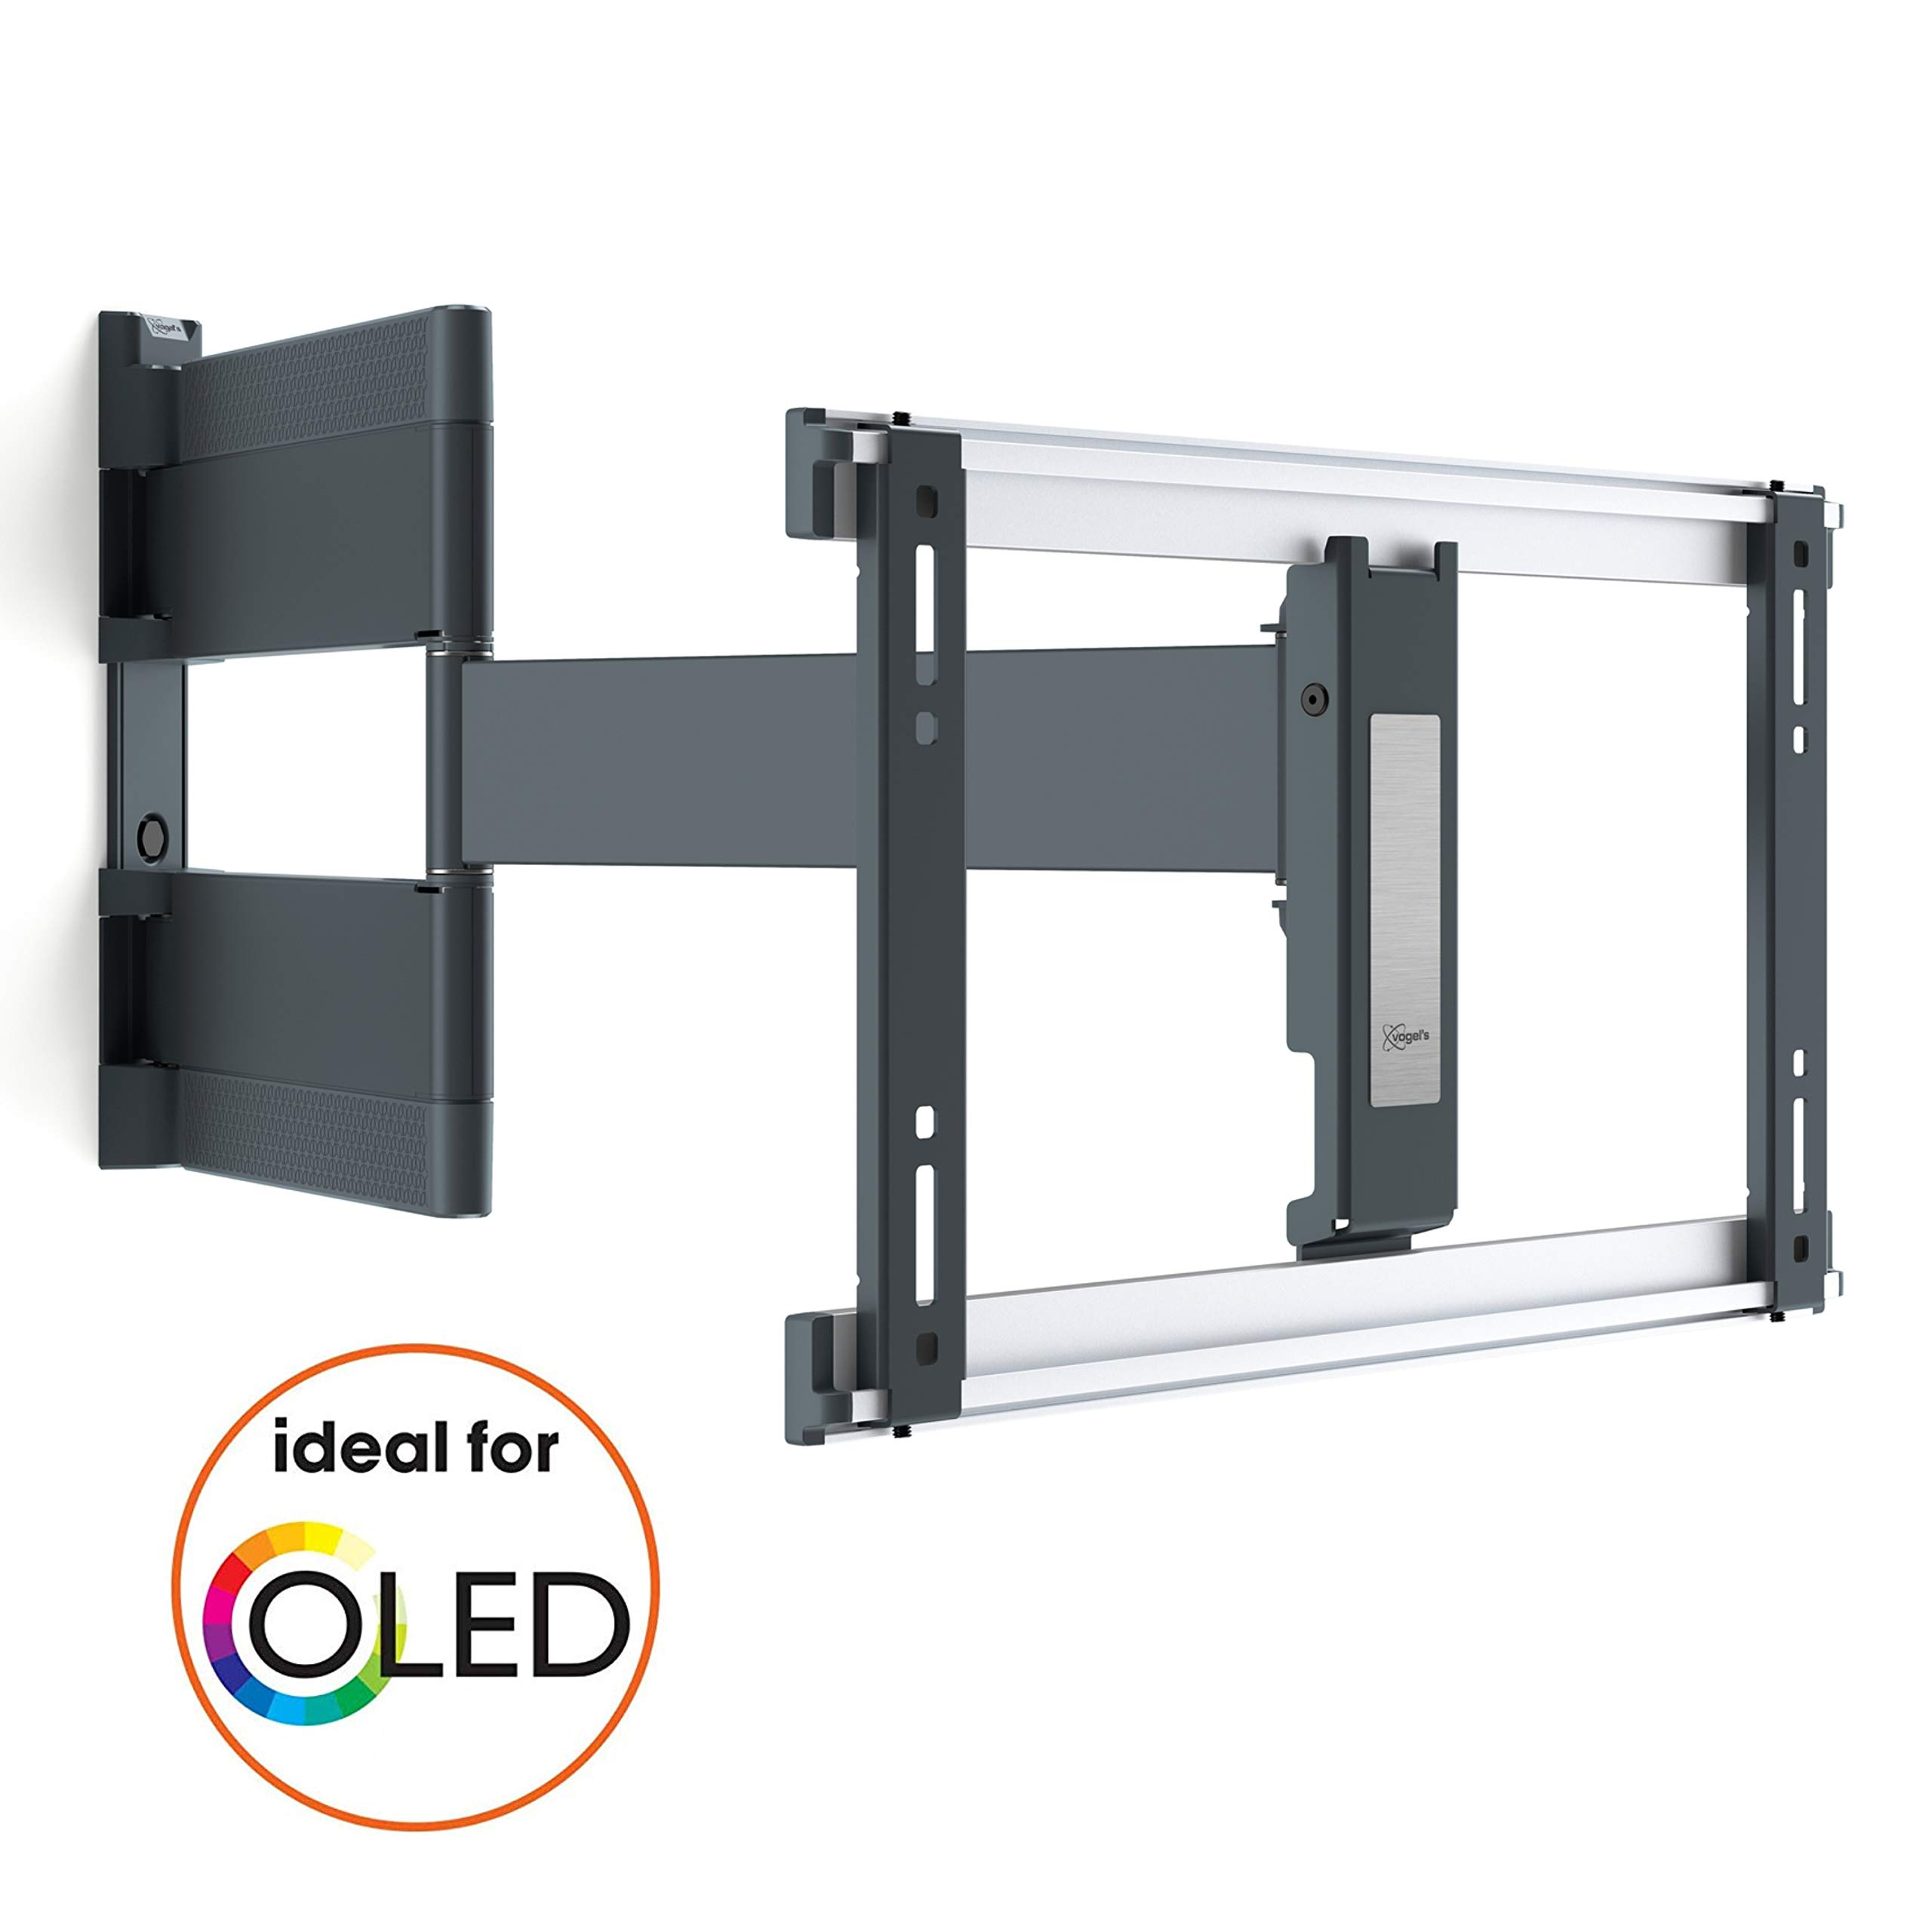 Vogels Thin 546 Extrathin - Soporte TV Giratorio para Pantallas Oled de 102: Vogels: Amazon.es: Electrónica